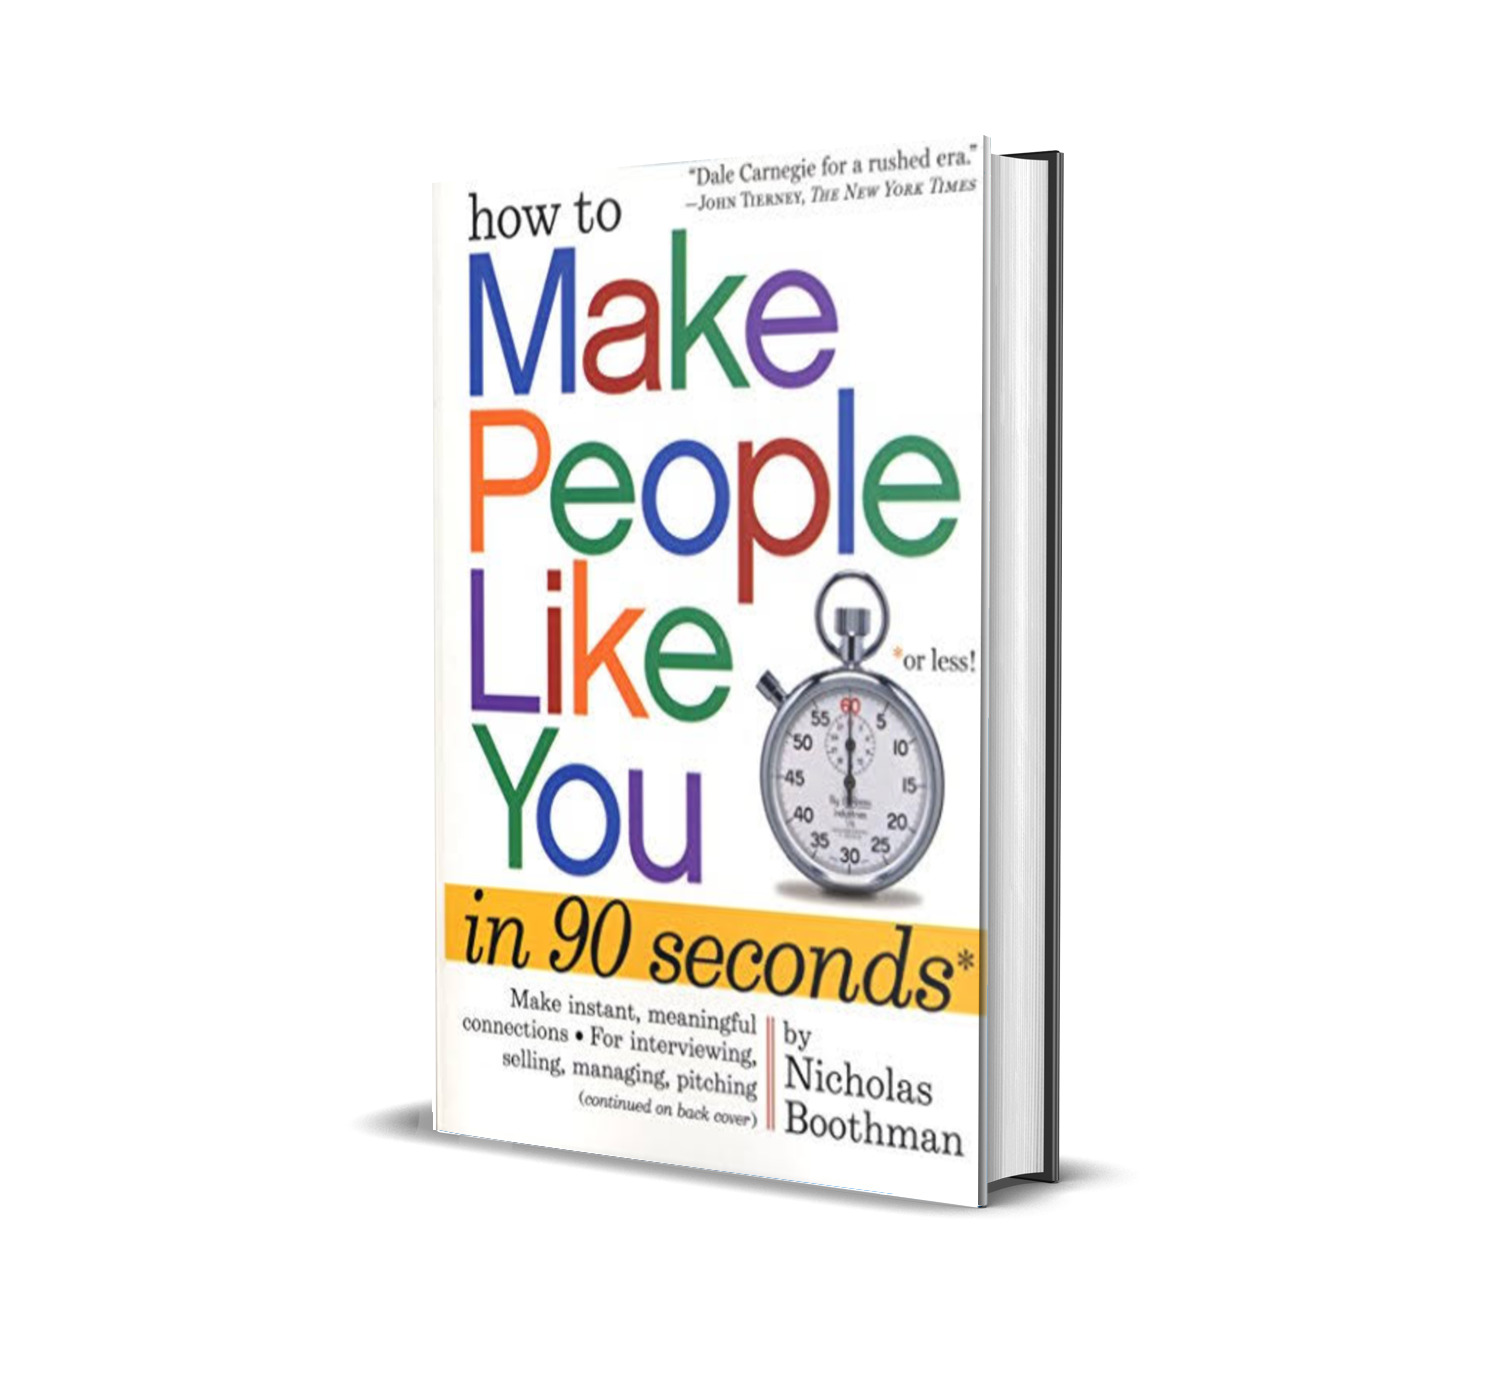 How to make people like you in 90 seconds- Nicholas Boothman